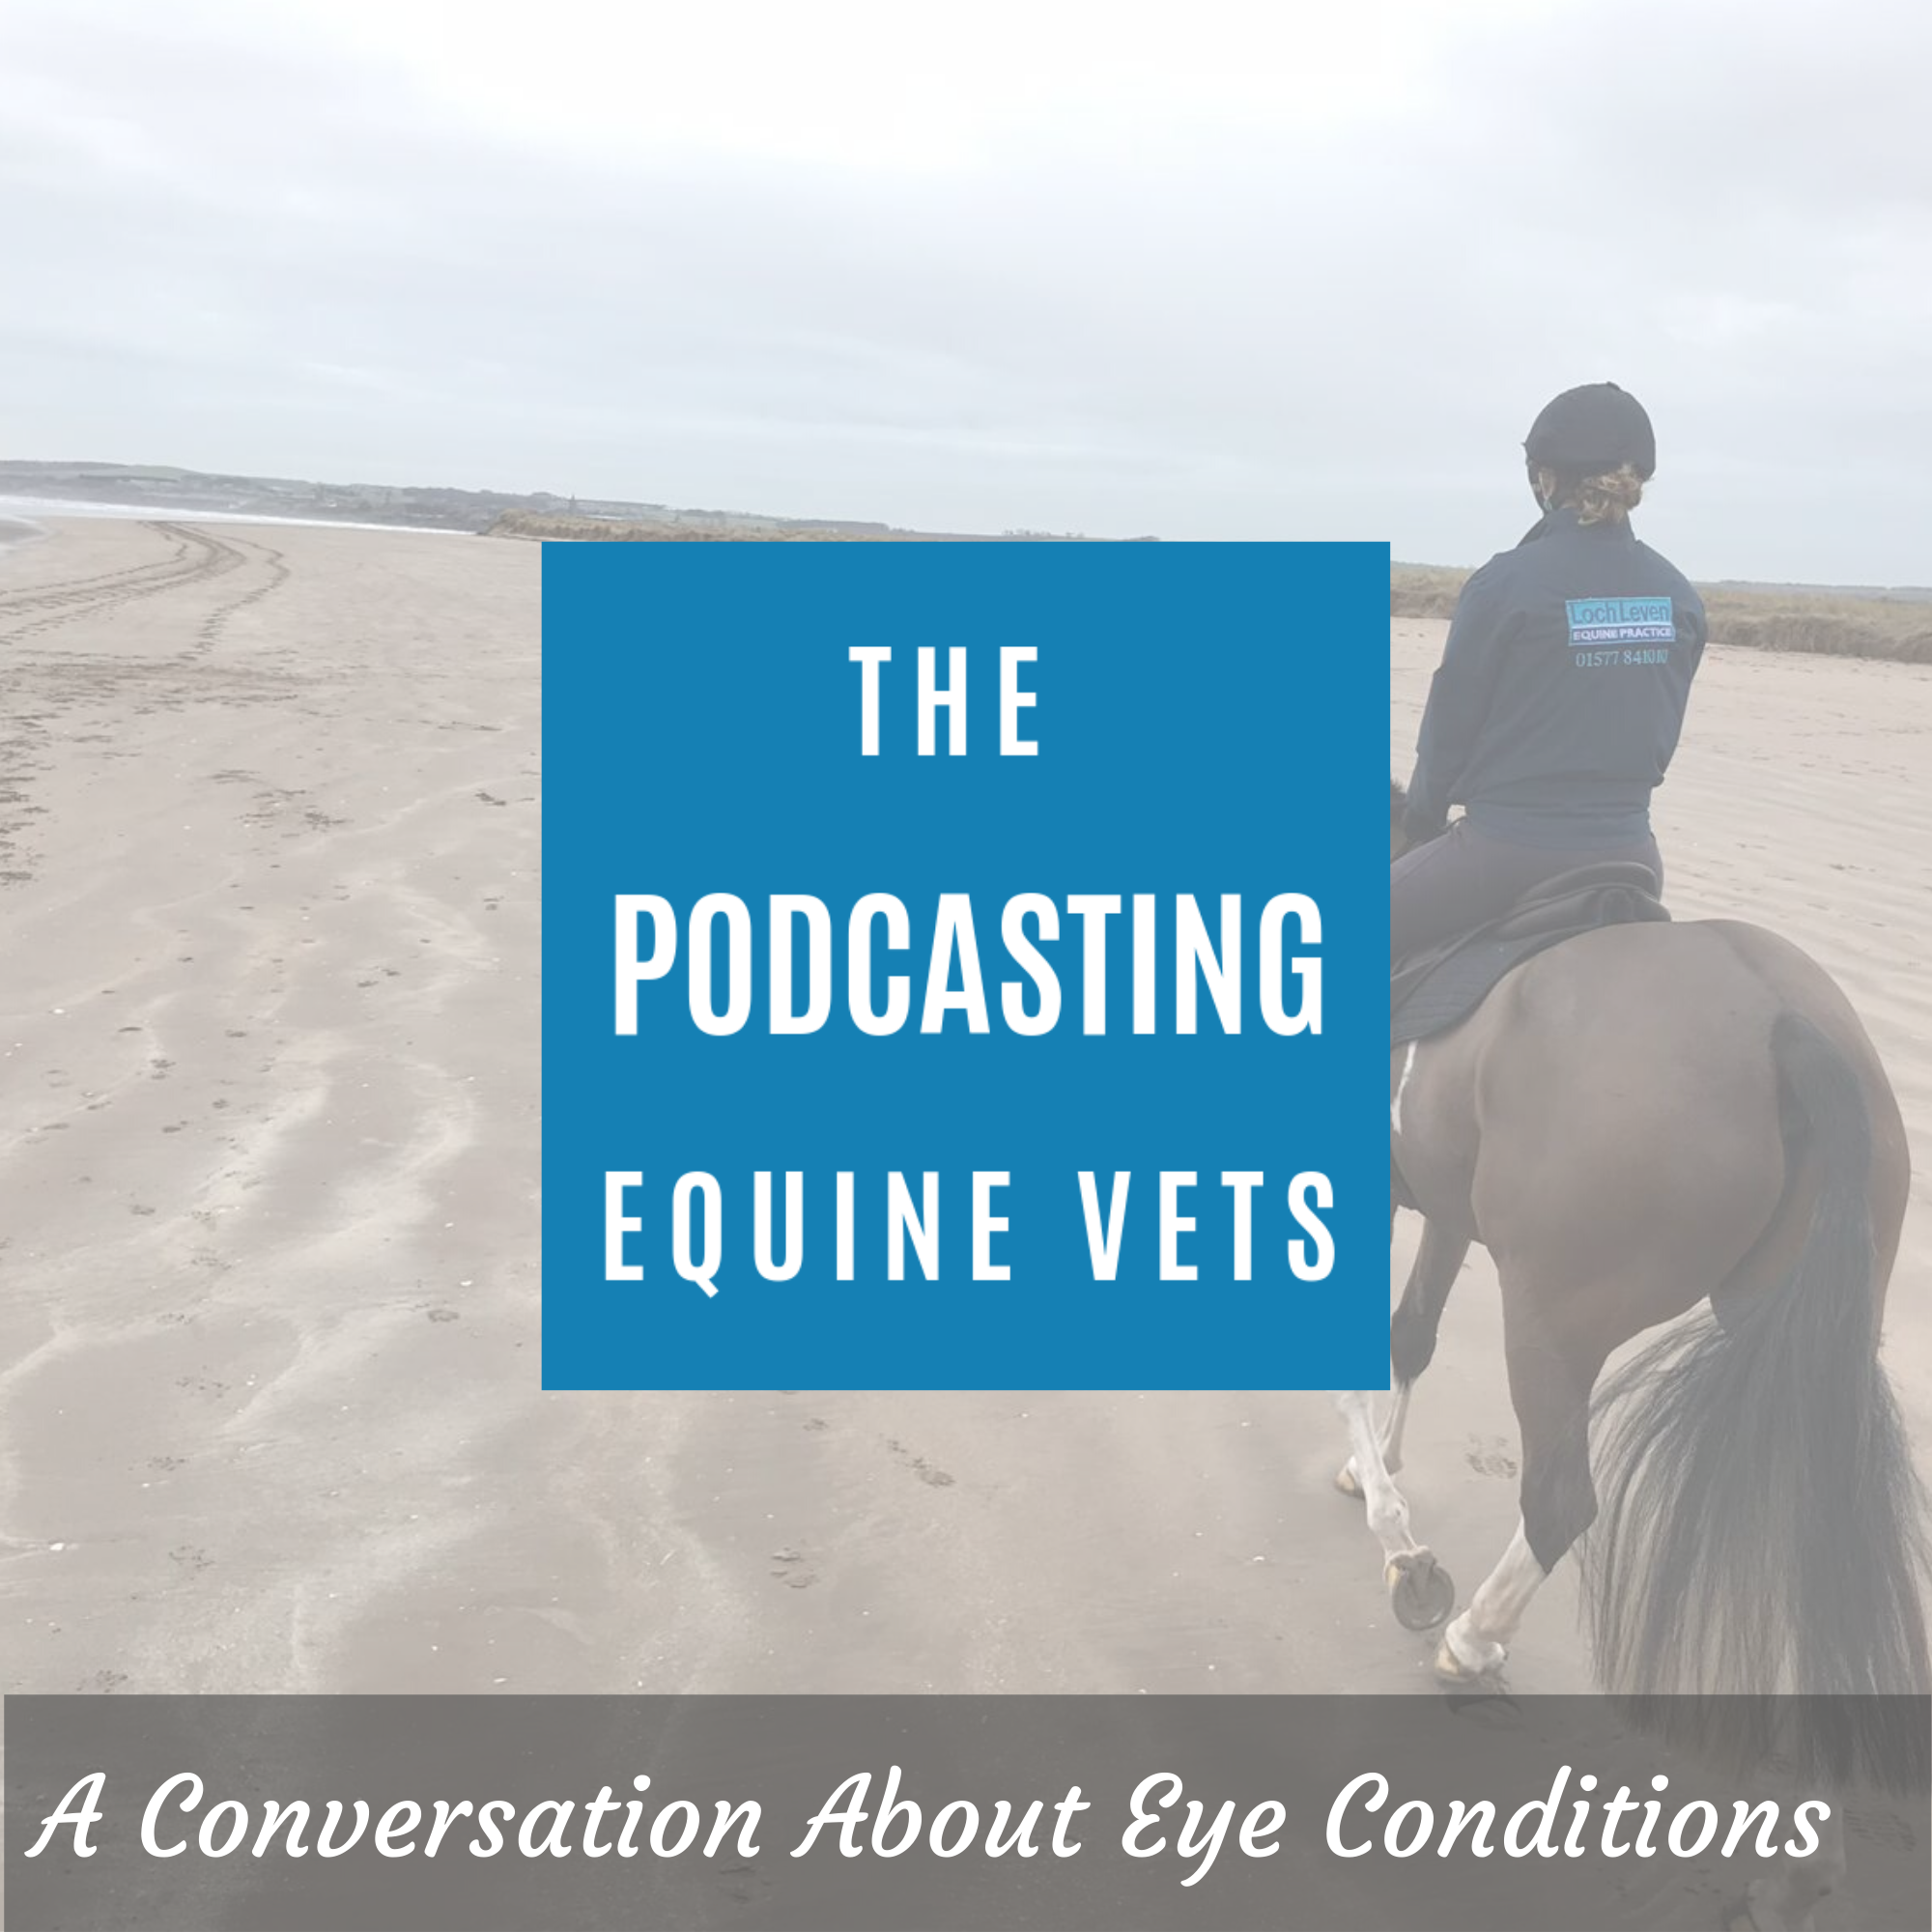 A Conversation About Eye Conditions